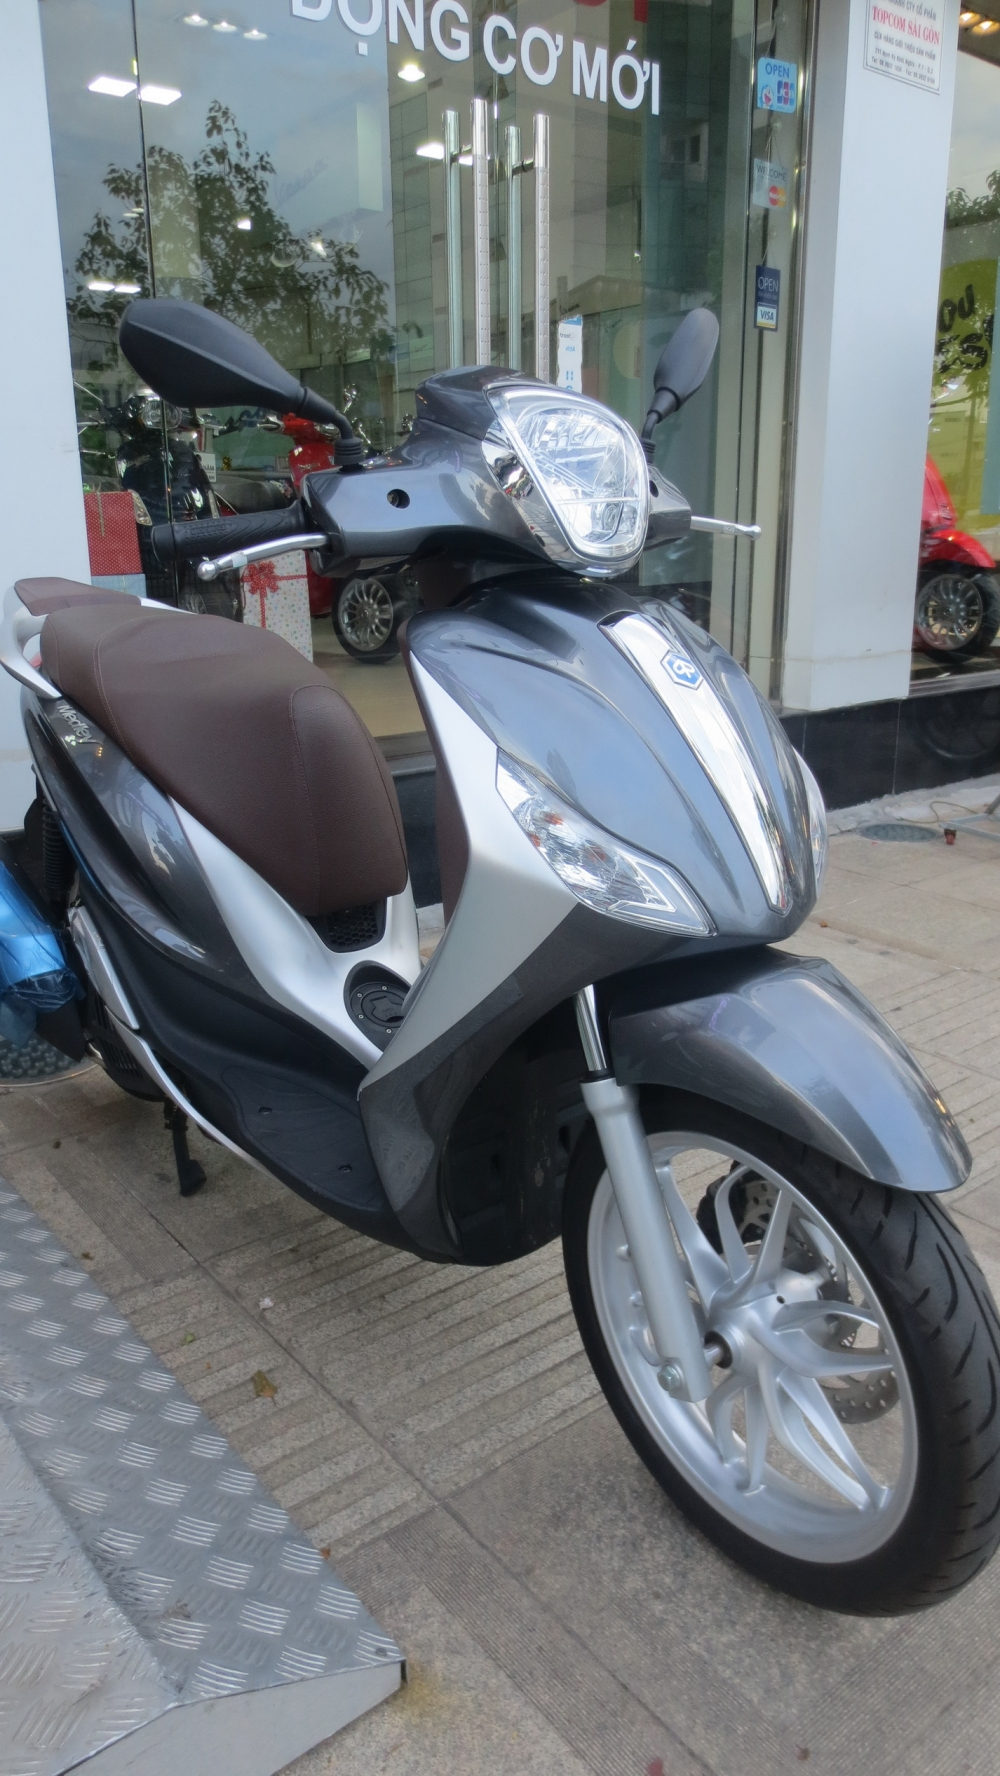 VESPA chinh hang gia tot nhat Update lien tuc - 30